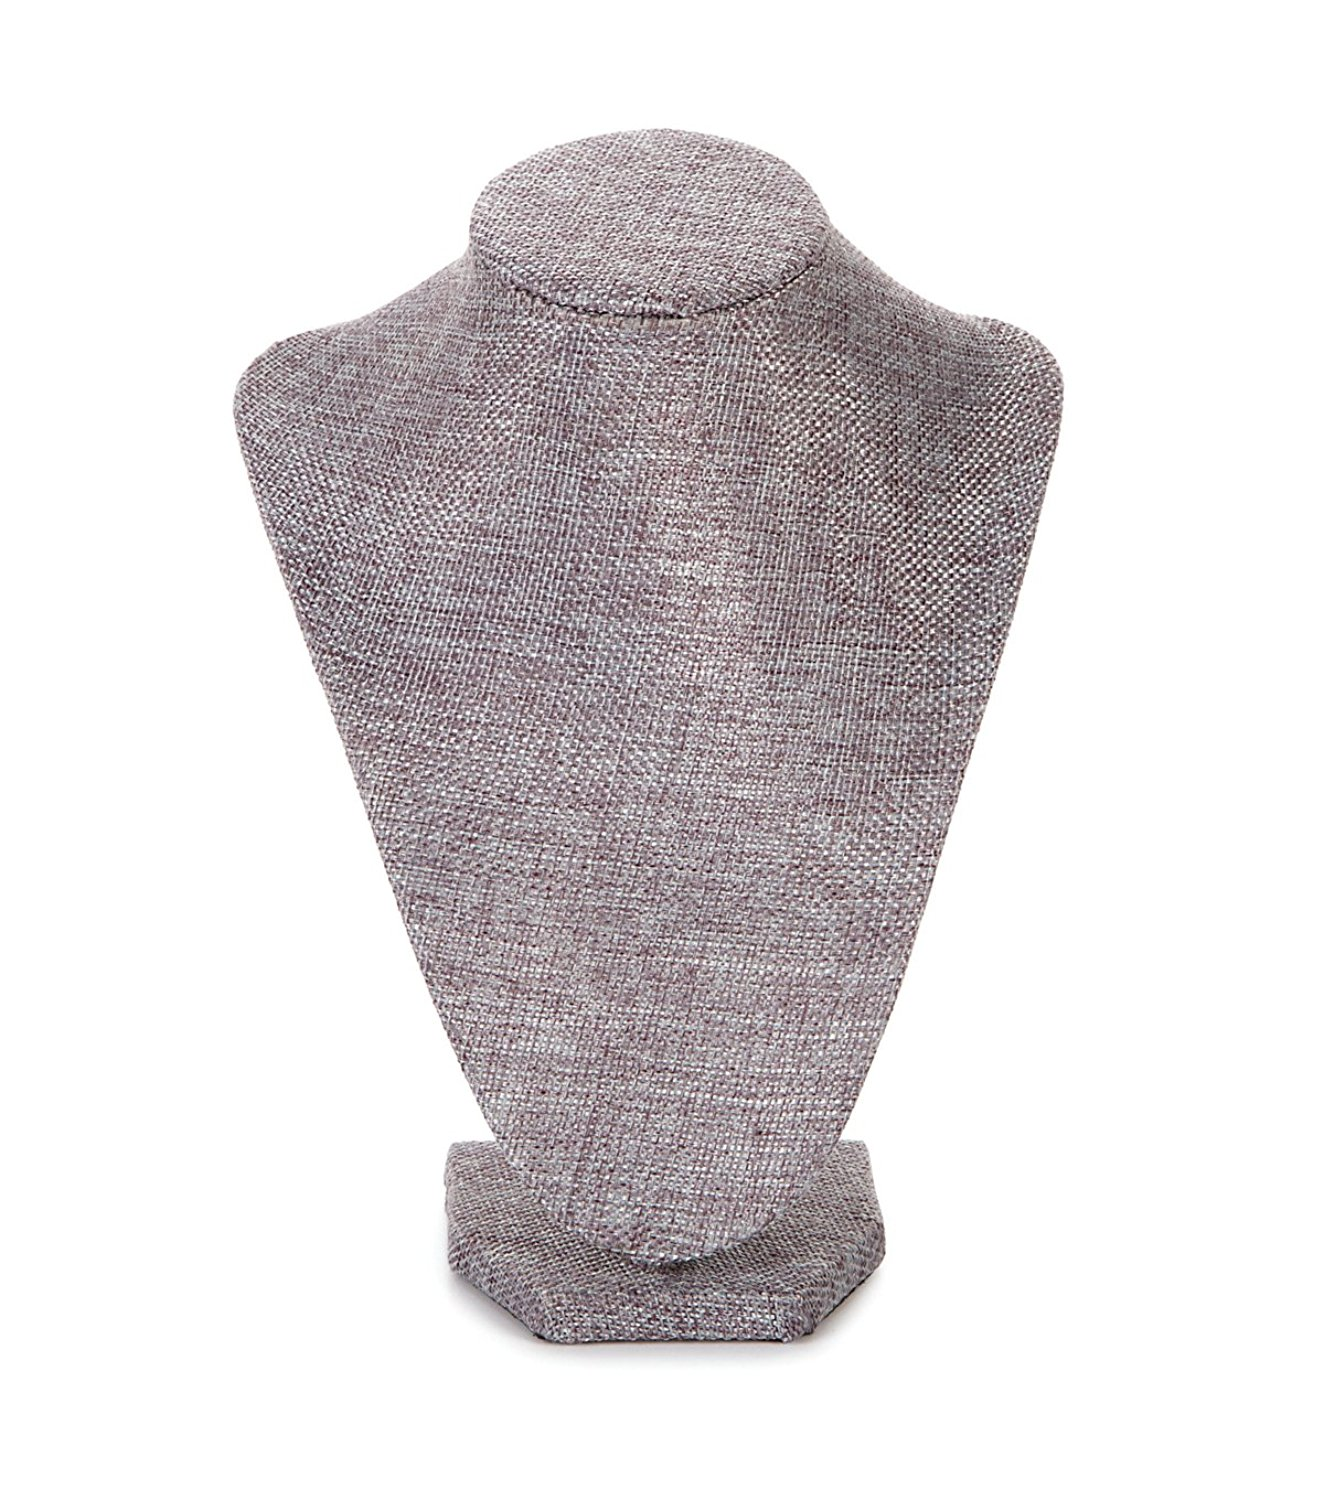 Rj Displays Grey Linen Necklace Bust Jewelry Display Stand Extra Tall For Large